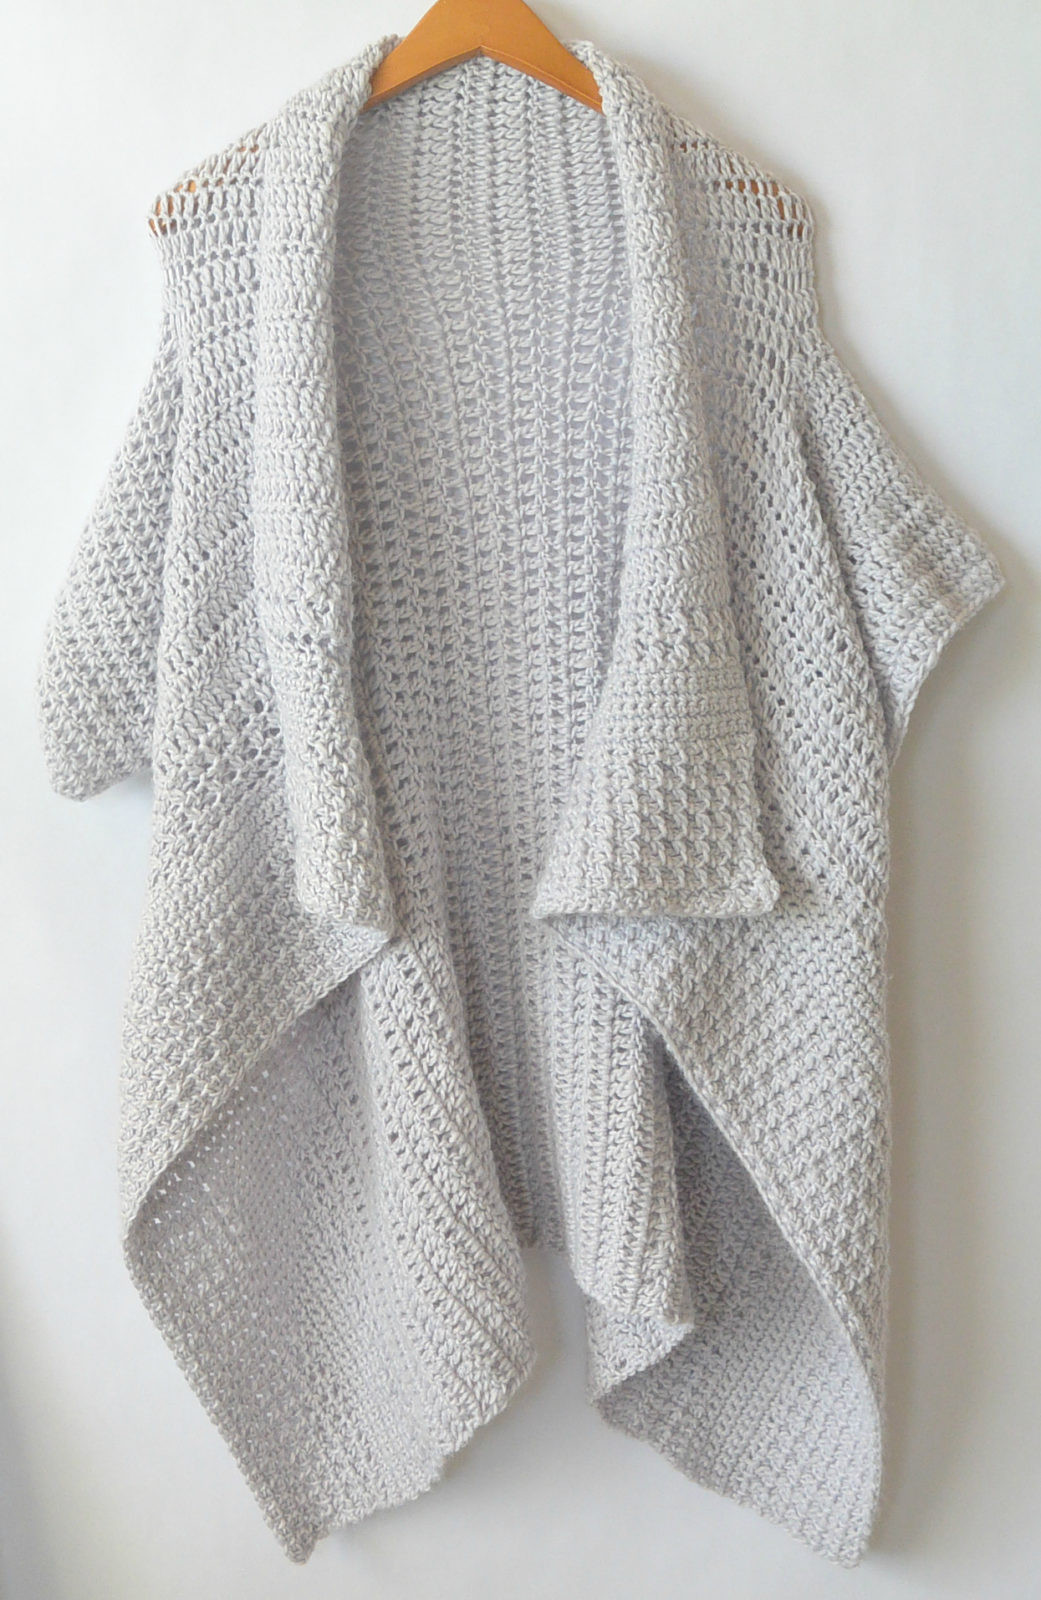 Crochet Cardigan Pattern Unique Cascading Kimono Cardigan Crochet Pattern – Mama In A Stitch Of Perfect 41 Ideas Crochet Cardigan Pattern